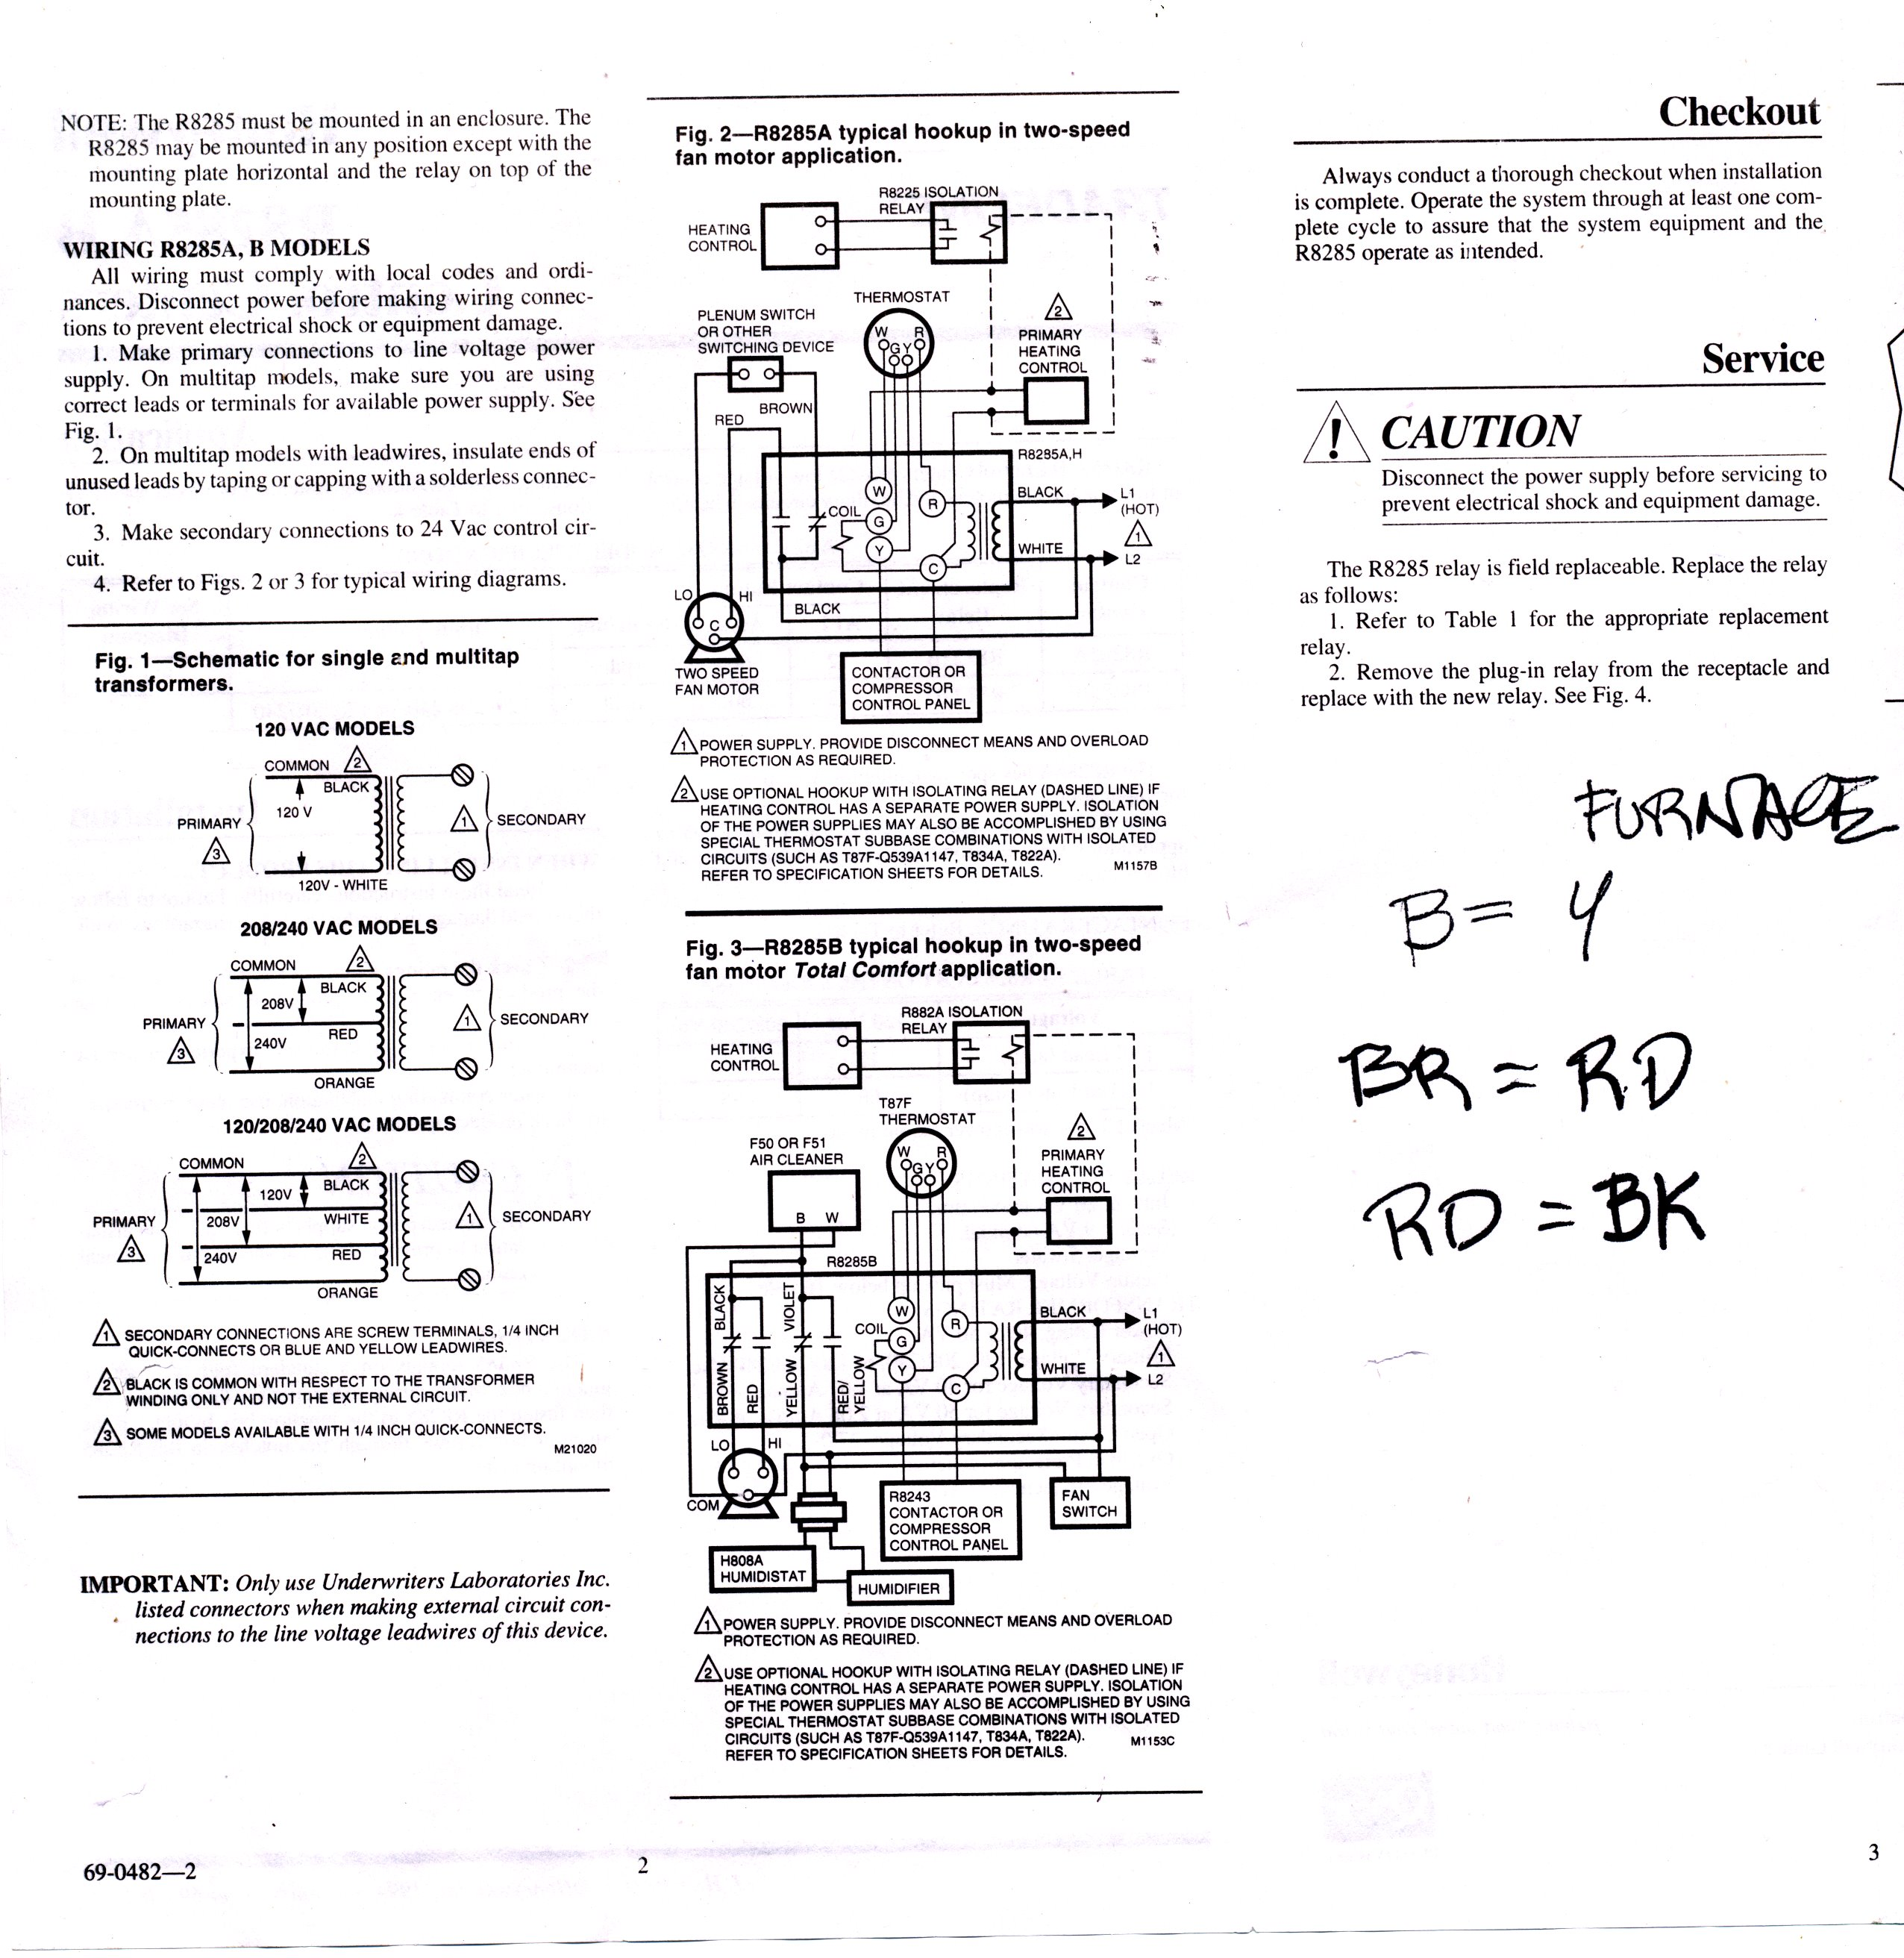 Honeywell Furnaces Wiring Diagram And Schematics. Home Honeywell Furnaces Wiring Diagram Furnace Fan Won T Stop Running After The Heating Cycle Is Done Rh Justanswer 120. Wiring. Honeywell Furnace Transformer Wiring Diagram At Scoala.co